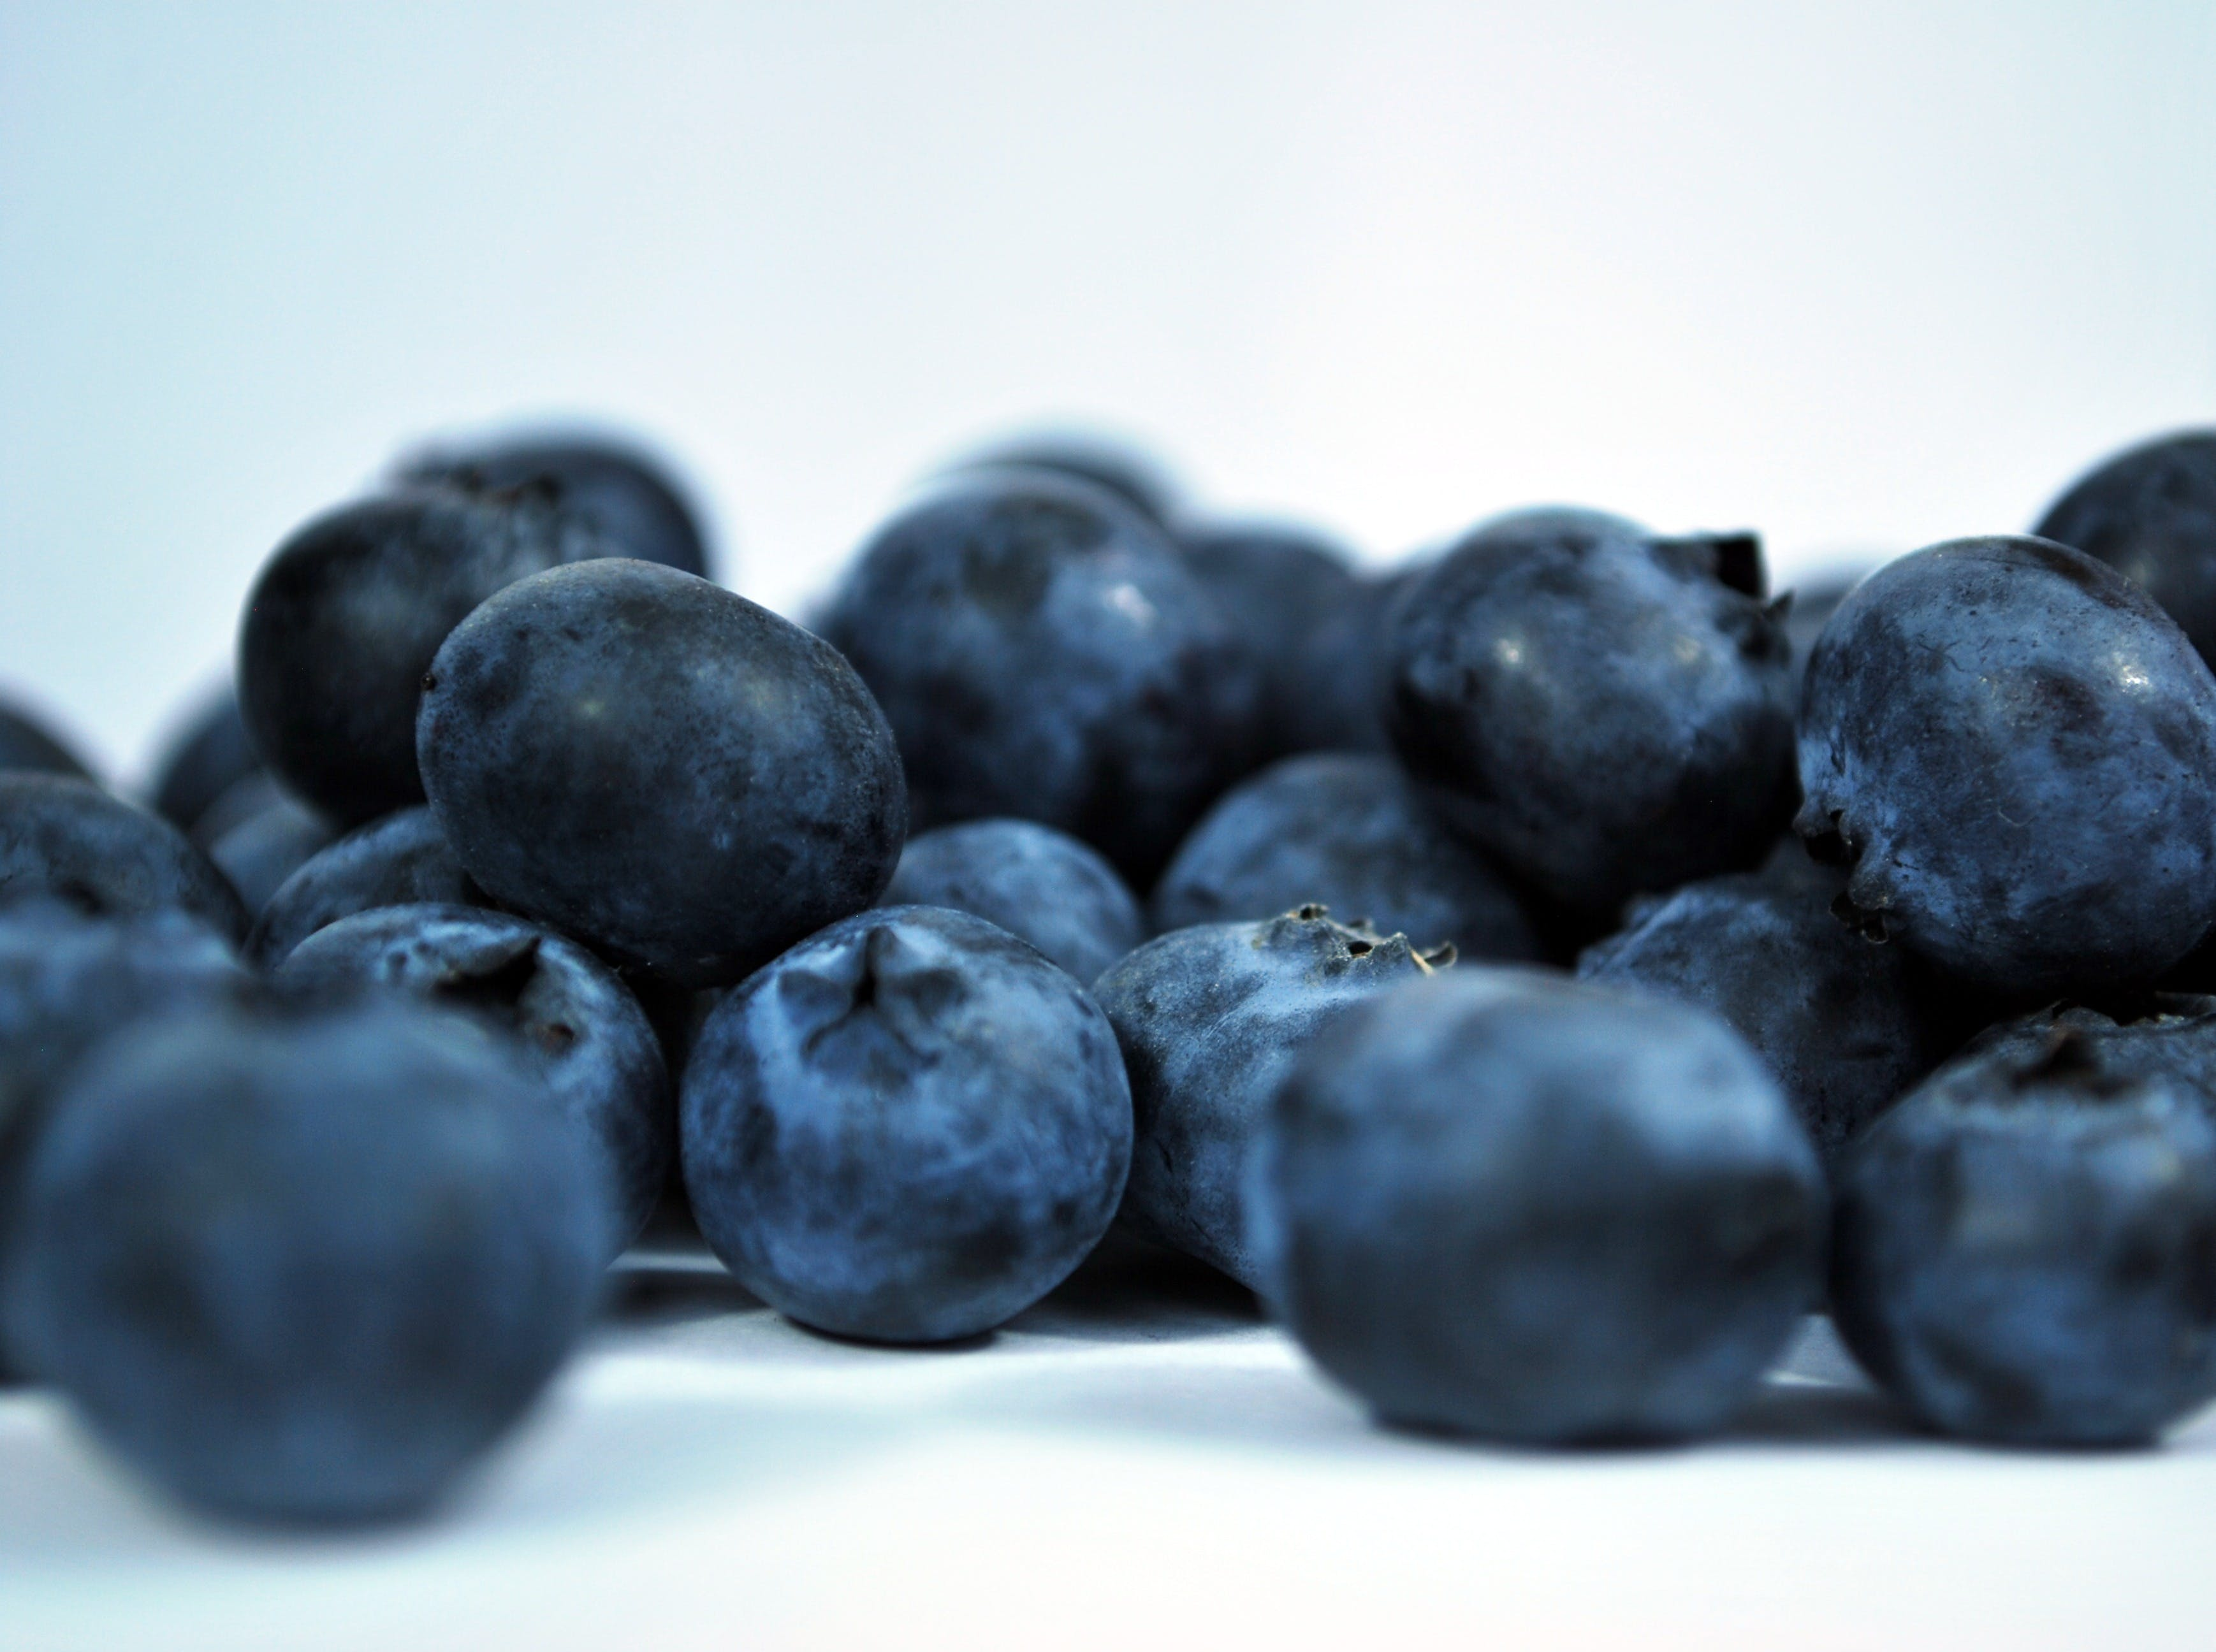 Shallow Photography of Blueberries